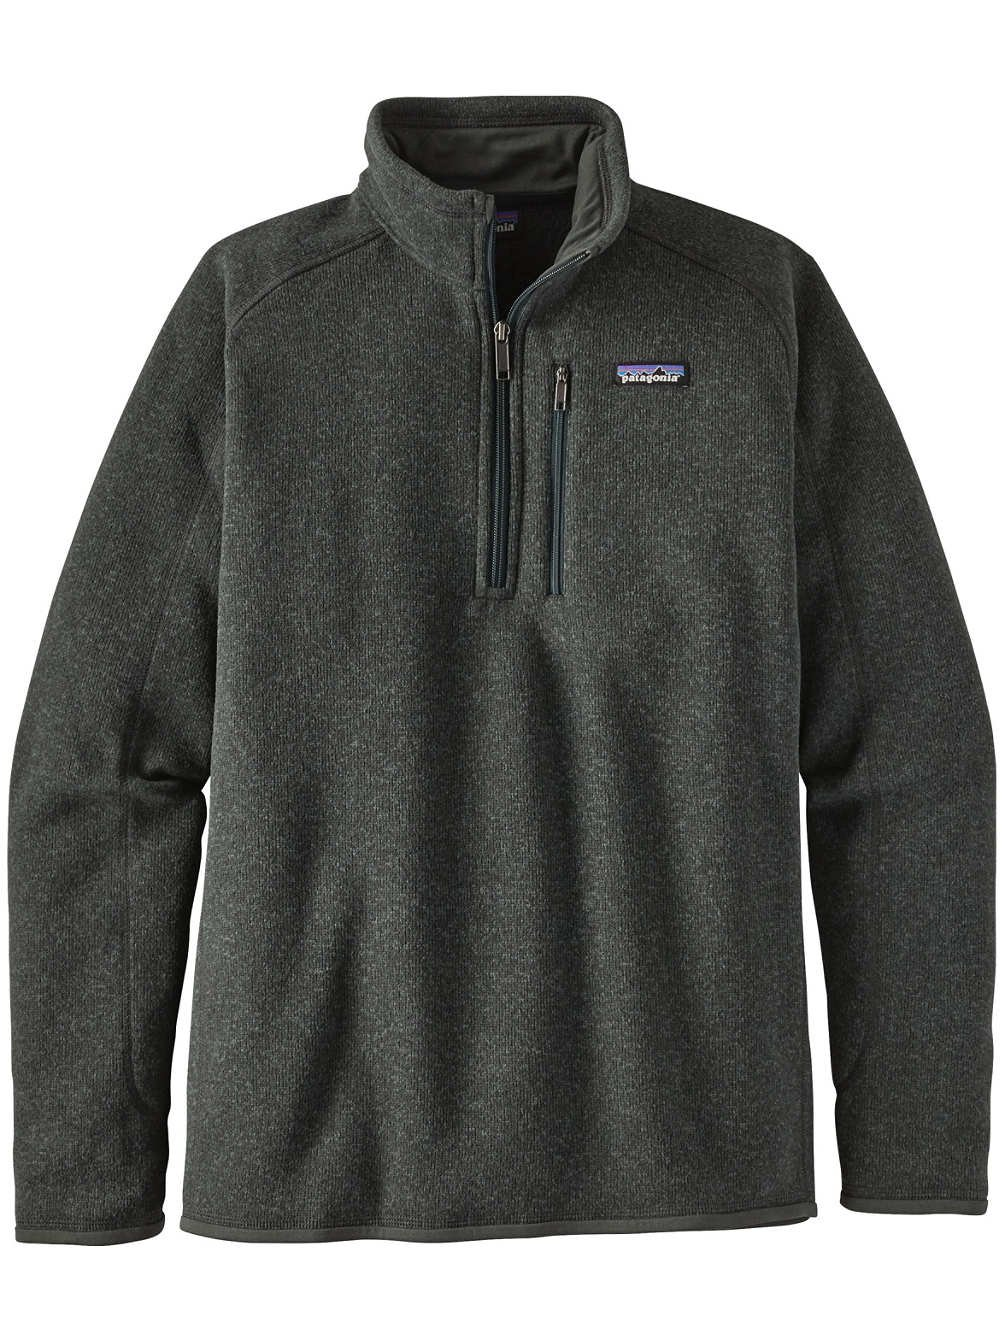 Patagonia Ms Better Sweater 1/4 Zip Casual Jacket Carbon Mens S